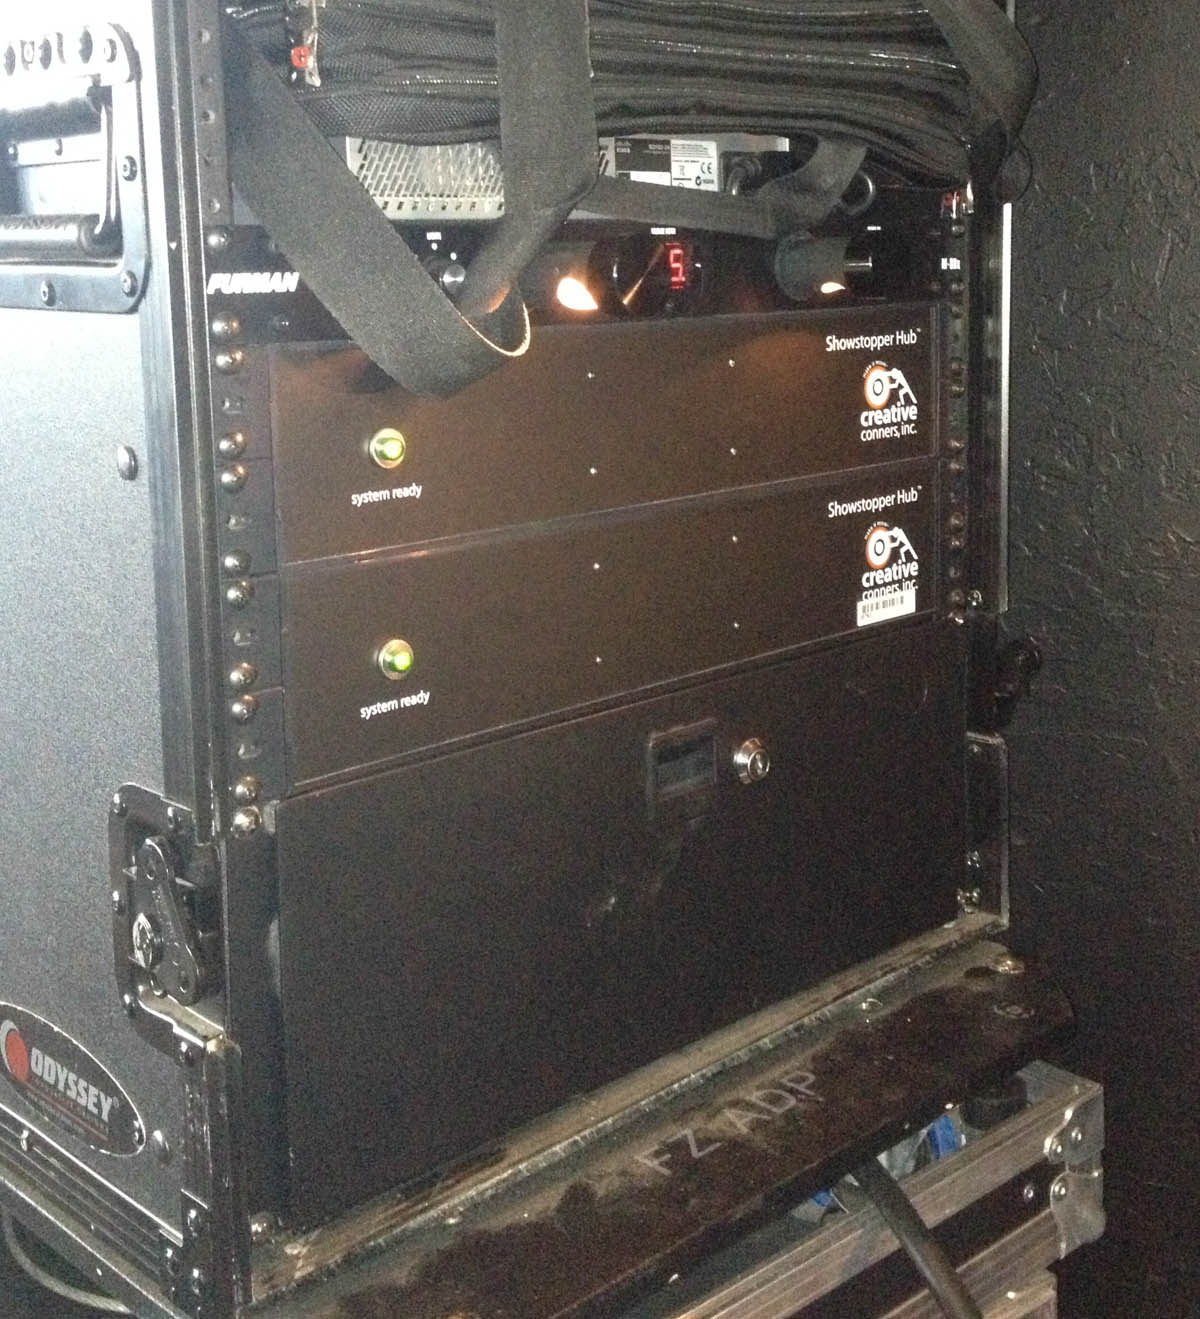 Creative Conners gear backstage at The Eagles tour